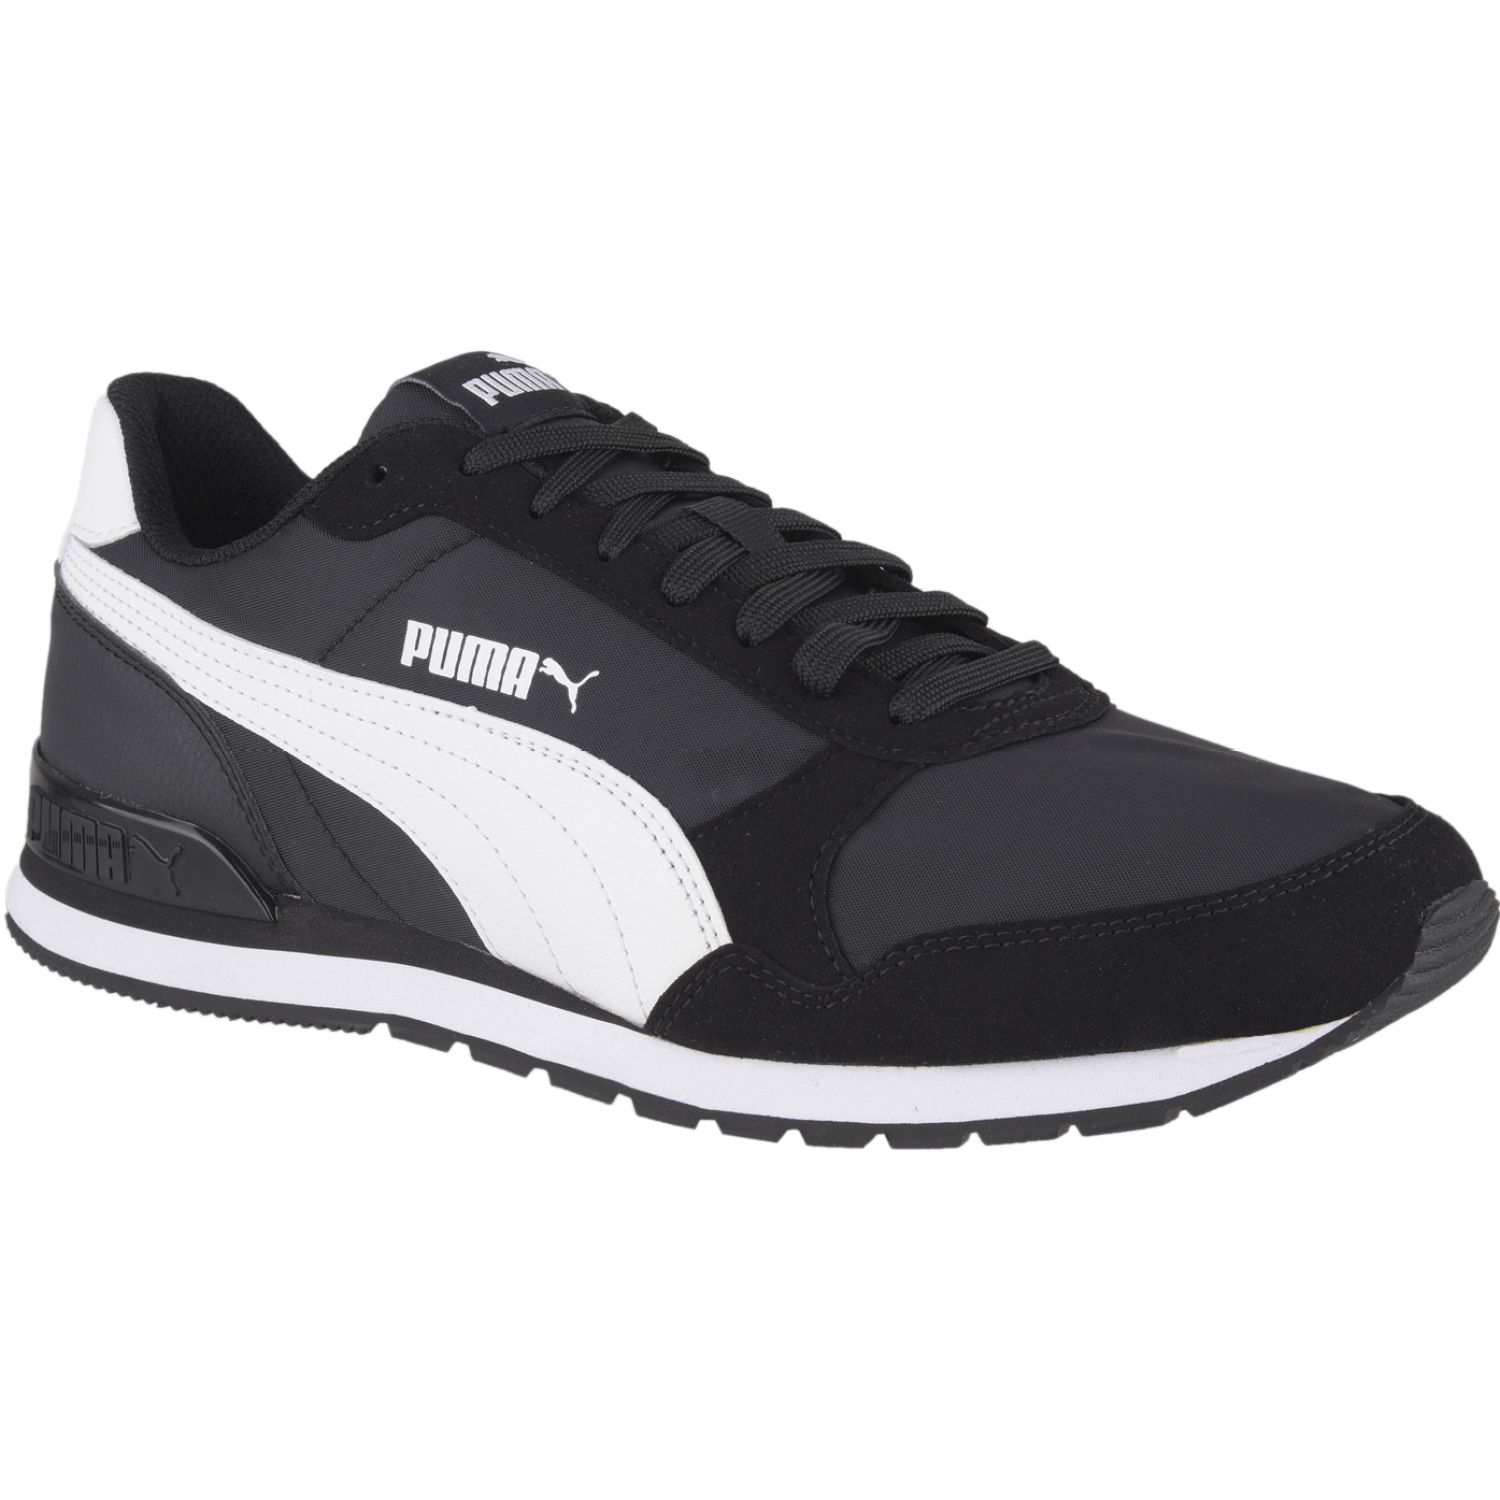 Puma st runner v2 nl Negro / blanco Walking